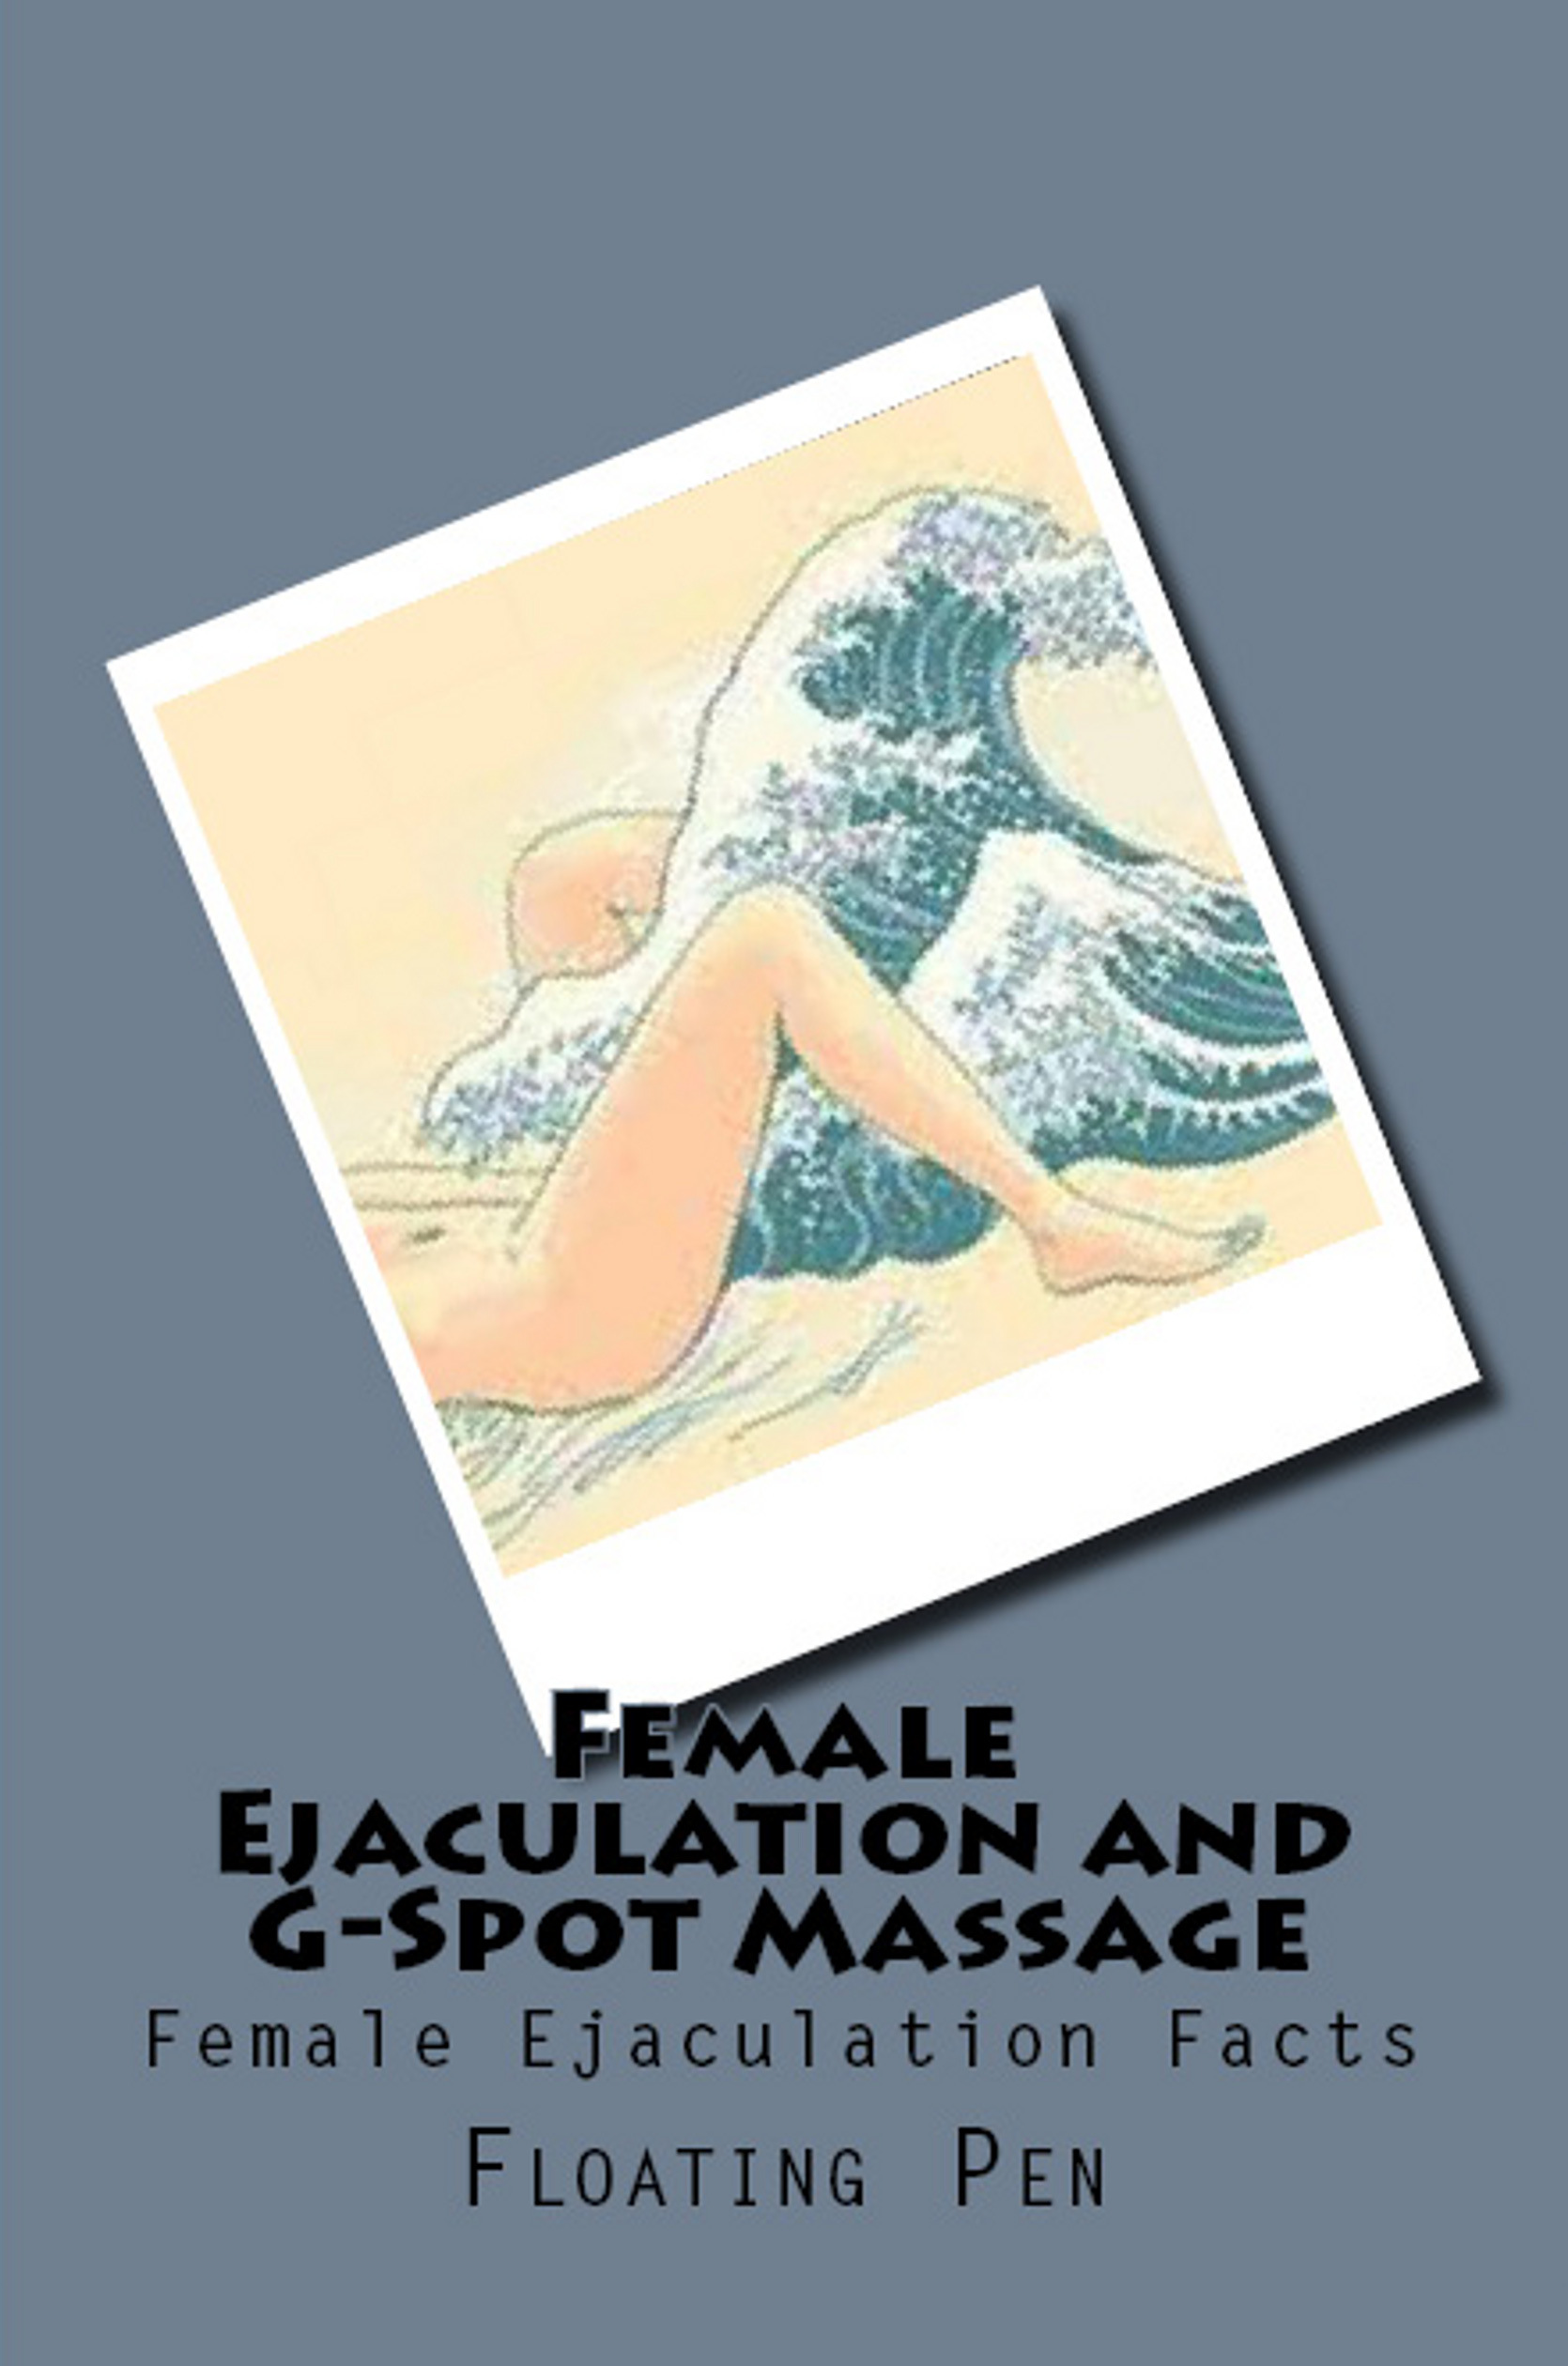 Female Ejaculation and G-Spot Massage By: Floating Pen